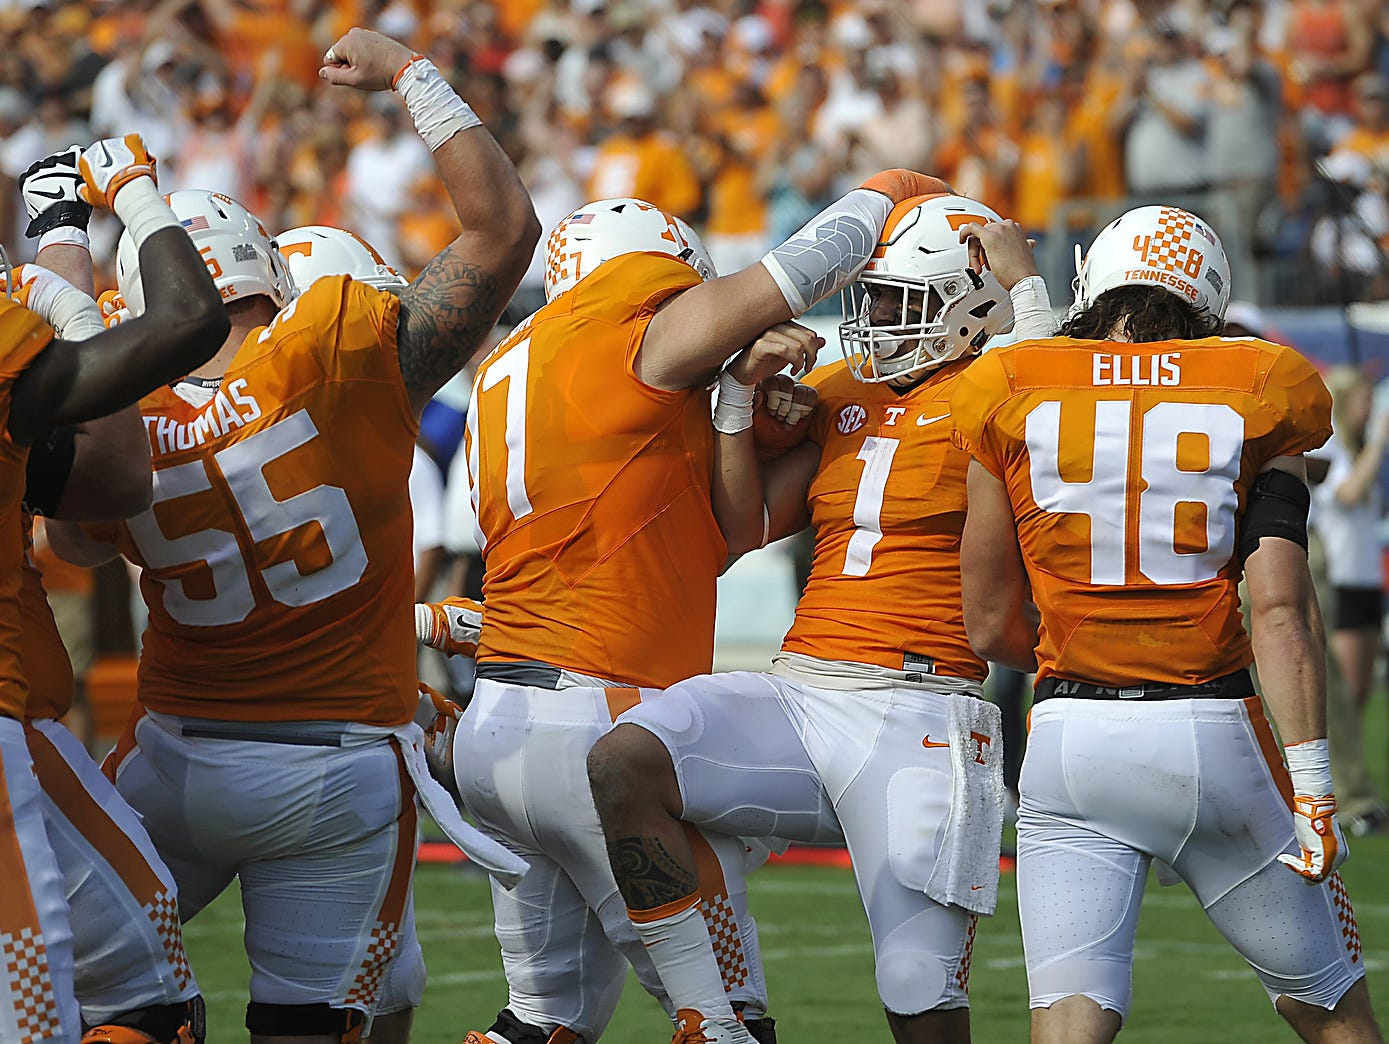 Tennessee teammates congratulate running back Jalen Hurd (1) after his touchdown against Bowling Green at Nissan Stadium in September.